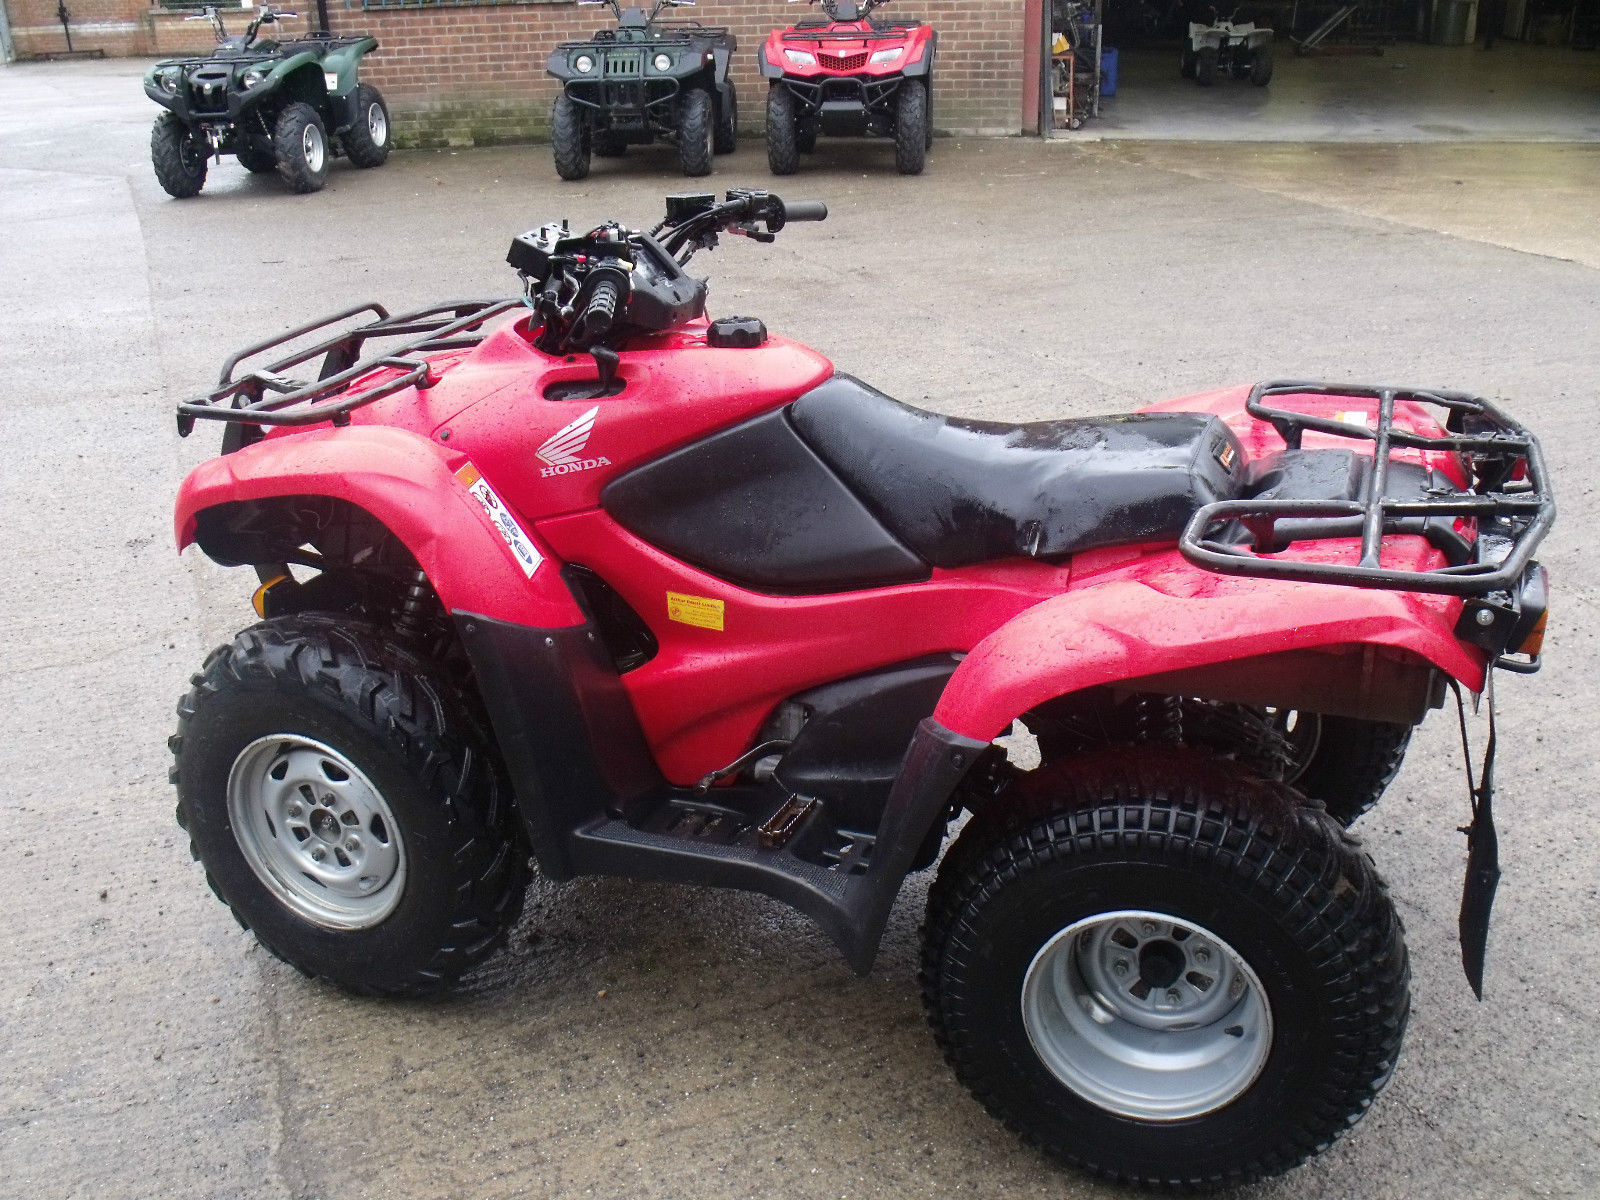 2010 honda trx420 fourtrax atv quad bike 4x4 trx 420 utility tractor. Black Bedroom Furniture Sets. Home Design Ideas